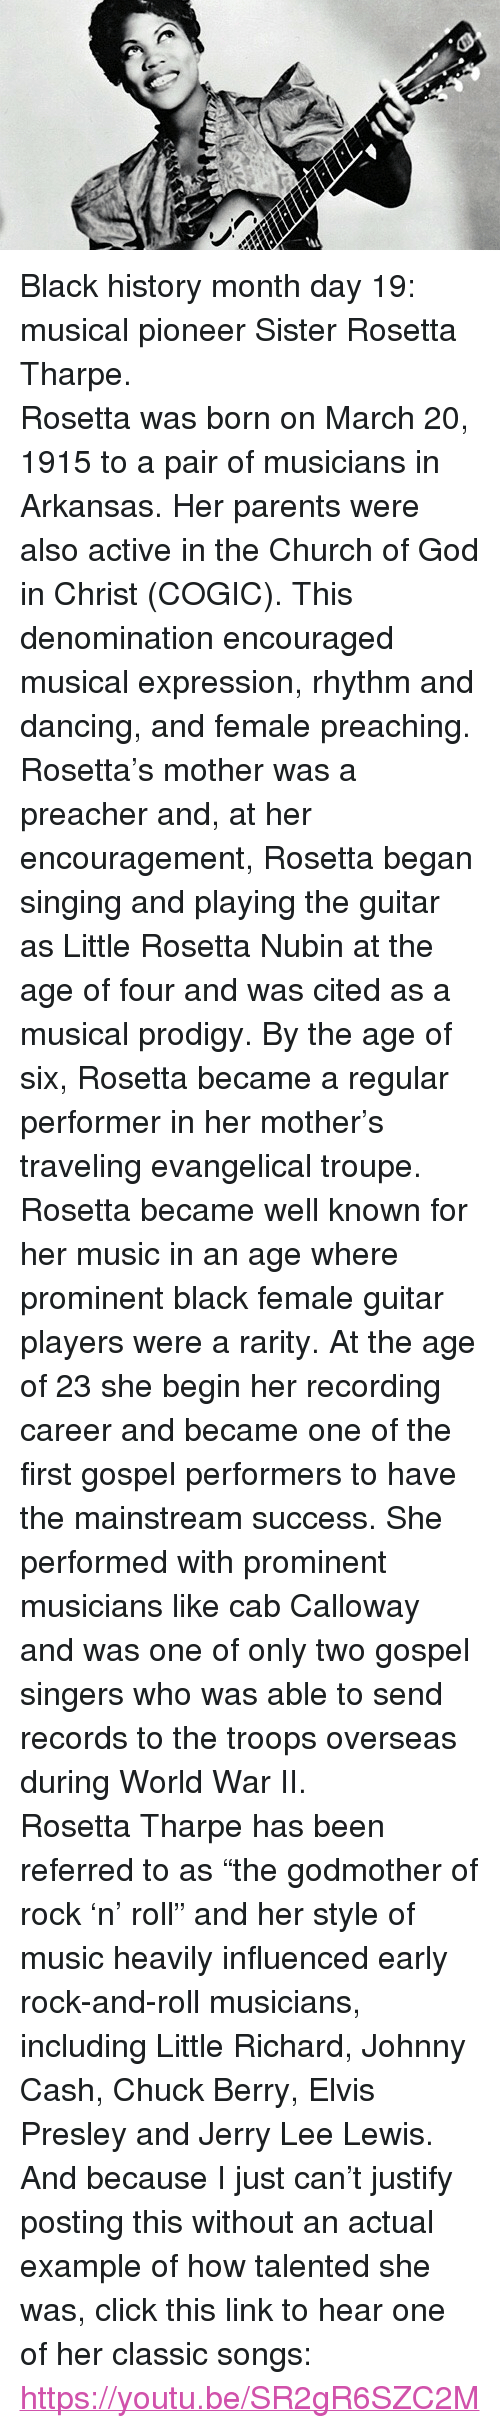 """chuck berry: <p>Black history month day 19: musical pioneer Sister Rosetta Tharpe.</p>  <p>Rosetta was born on March 20, 1915 to a pair of musicians in Arkansas. Her parents were also active in the Church of God in Christ (COGIC). This denomination encouraged musical expression, rhythm and dancing, and female preaching. Rosetta's mother was a preacher and, at her encouragement, Rosetta began singing and playing the guitar as Little Rosetta Nubin at the age of four and was cited as a musical prodigy. By the age of six, Rosetta became a regular performer in her mother's traveling evangelical troupe.</p>  <p>Rosetta became well known for her music in an age where prominent black female guitar players were a rarity. At the age of 23 she begin her recording career and became one of the first gospel performers to have the mainstream success. She performed with prominent musicians like cab Calloway and was one of only two gospel singers who was able to send records to the troops overseas during World War II.</p>  <p>Rosetta Tharpe has been referred to as """"the godmother of rock 'n' roll"""" and her style of music heavily influenced early rock-and-roll musicians, including Little Richard, Johnny Cash, Chuck Berry, Elvis Presley and Jerry Lee Lewis.</p>  <p>And because I just can't justify posting this without an actual example of how talented she was, click this link to hear one of her classic songs: <a href=""""https://youtu.be/SR2gR6SZC2M"""">https://youtu.be/SR2gR6SZC2M</a></p>"""